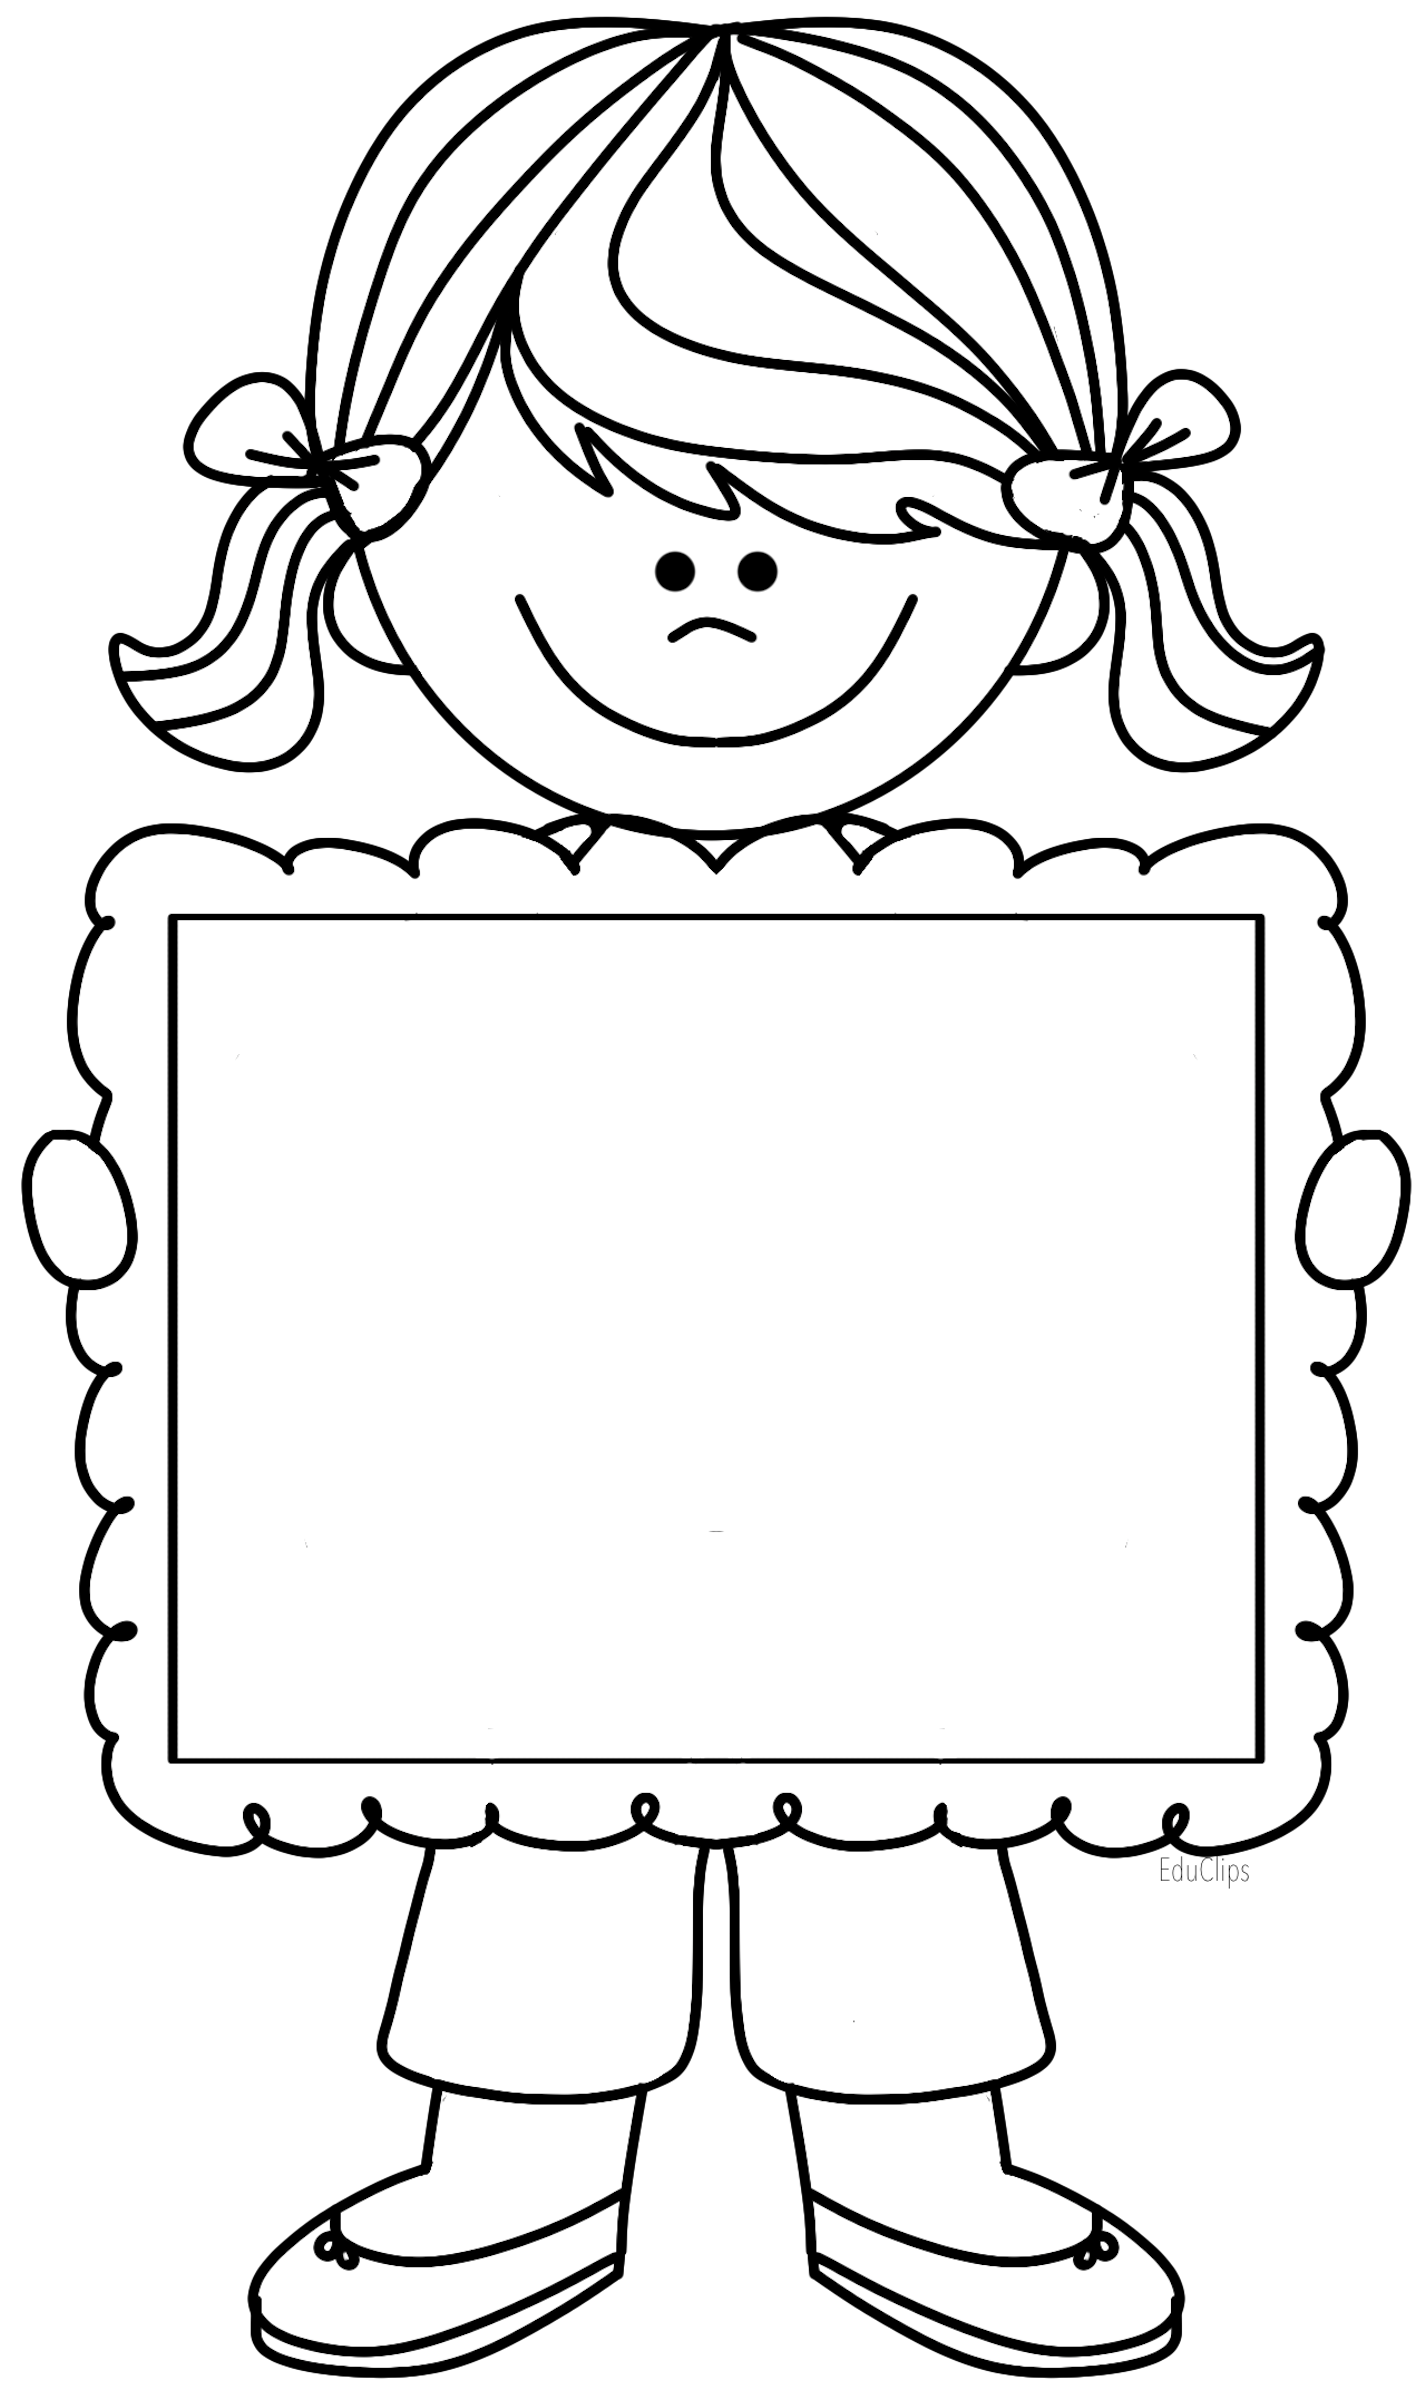 Families clipart frame. Http media cache cd